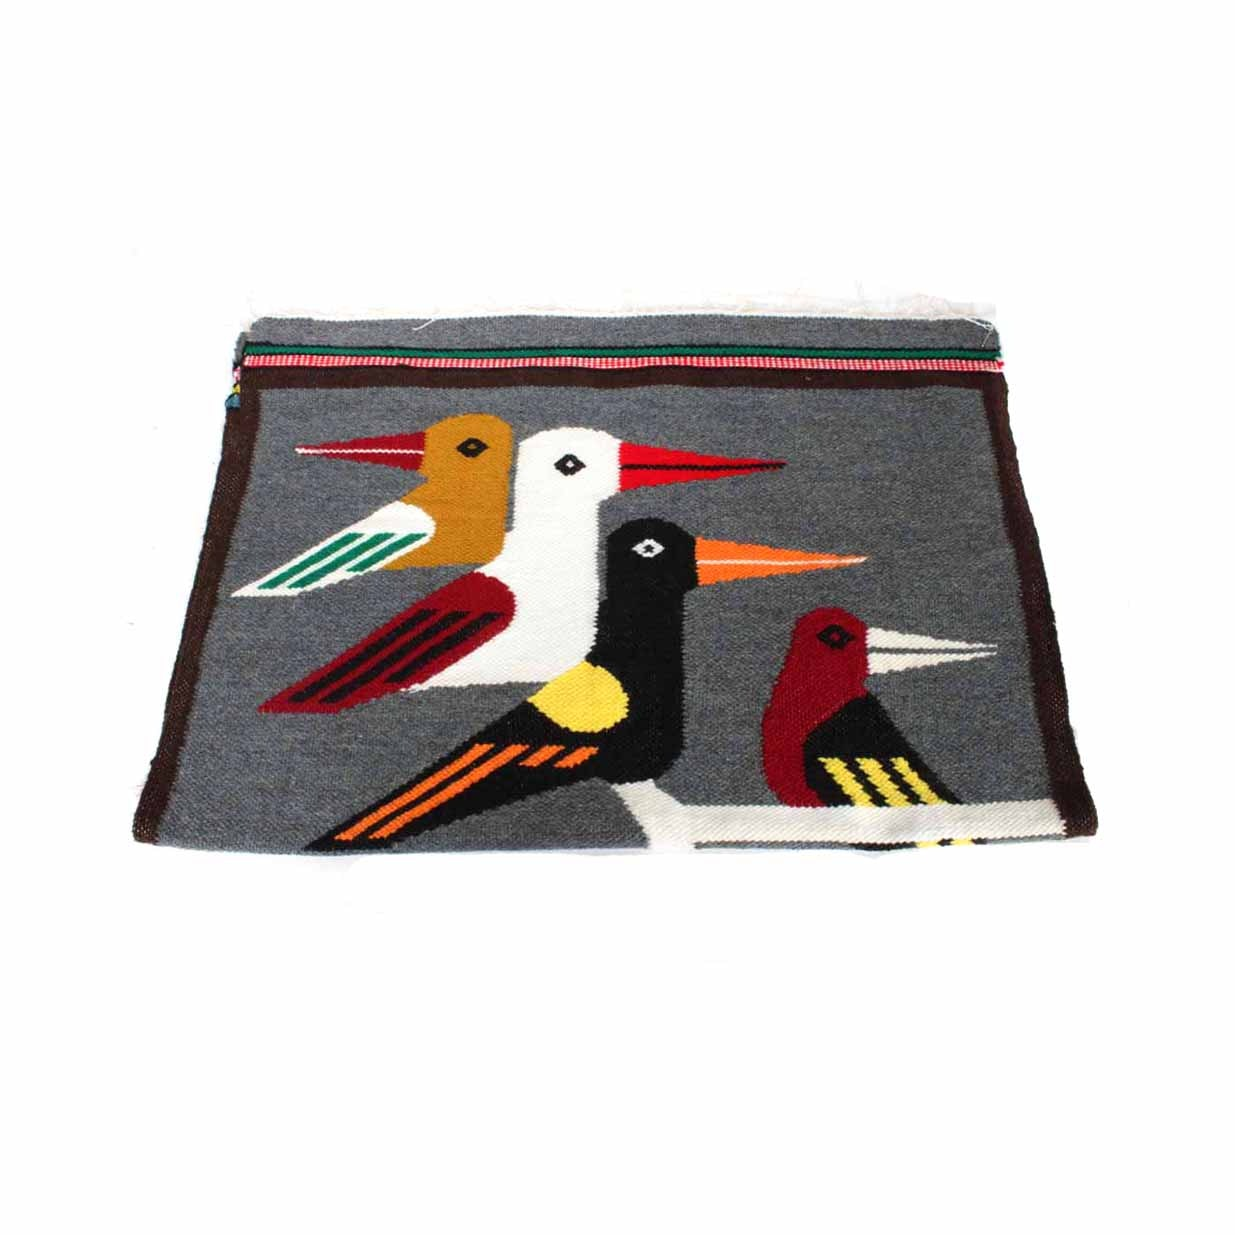 Native American Woven Tapestry Ebth